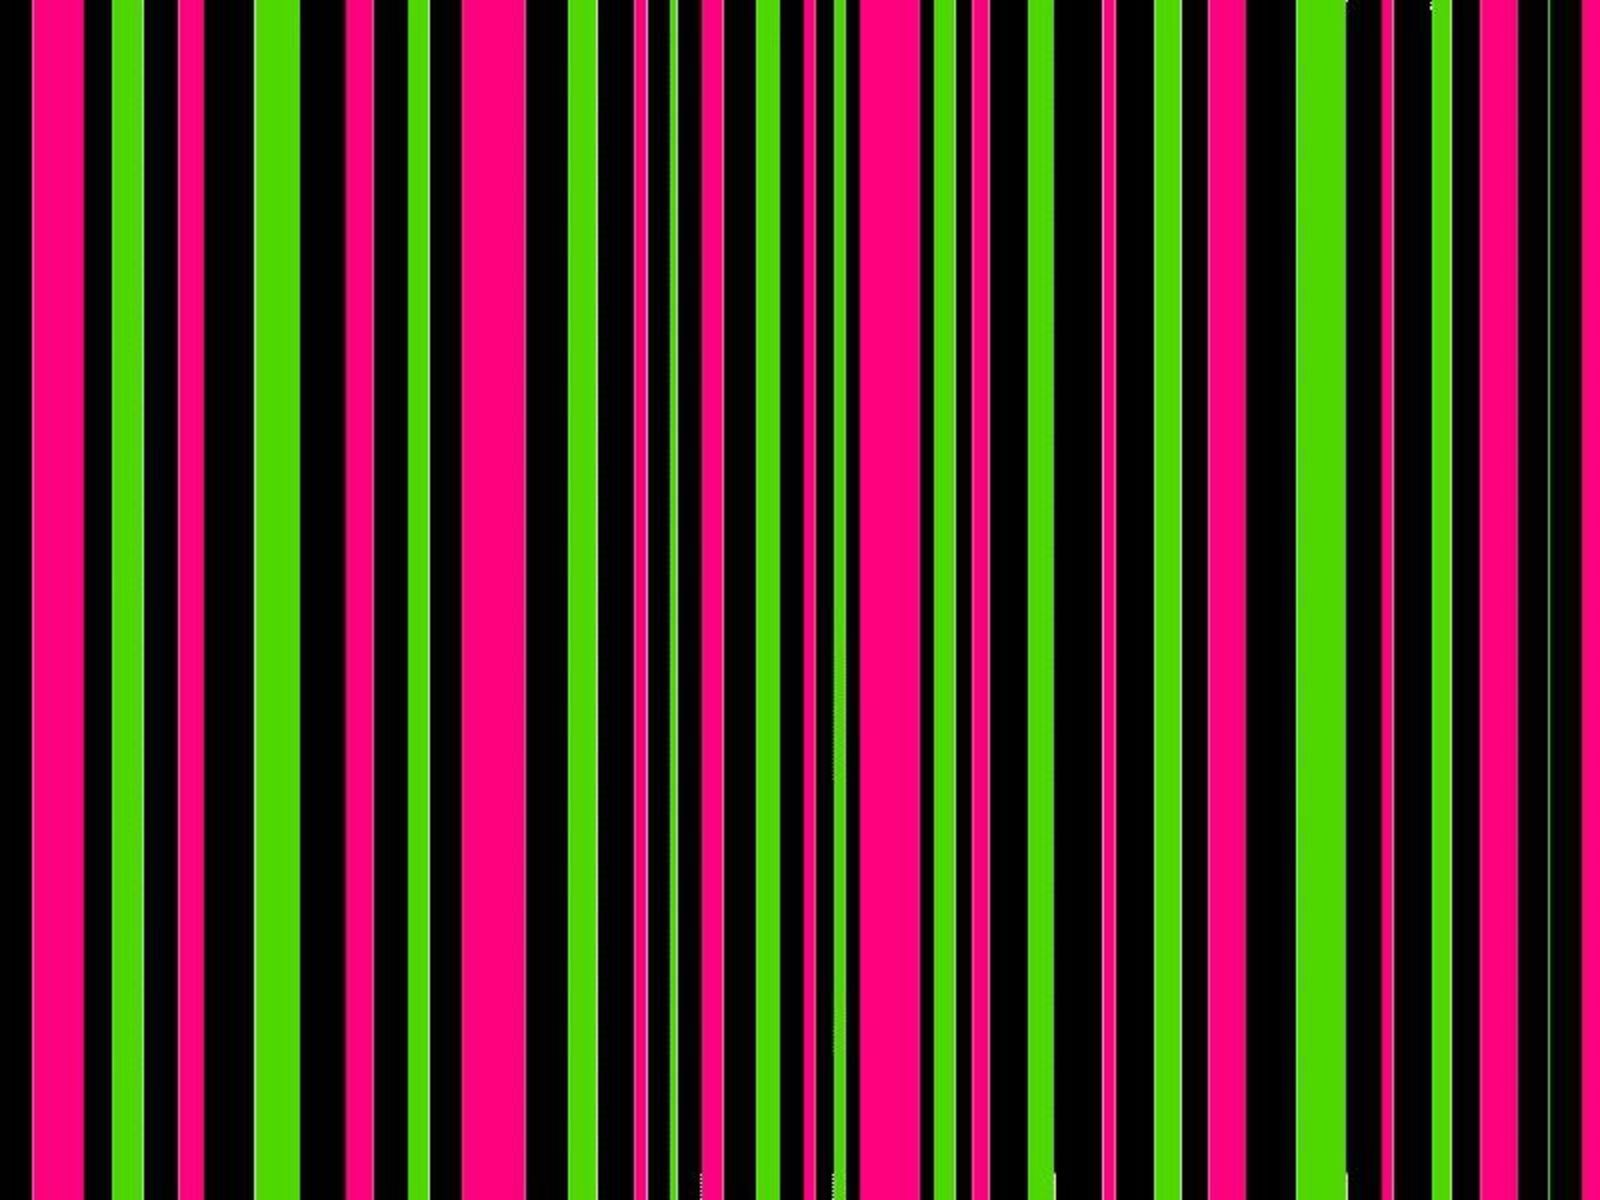 Neon Colors Rock Images Stripes Hd Wallpaper And Background Photos